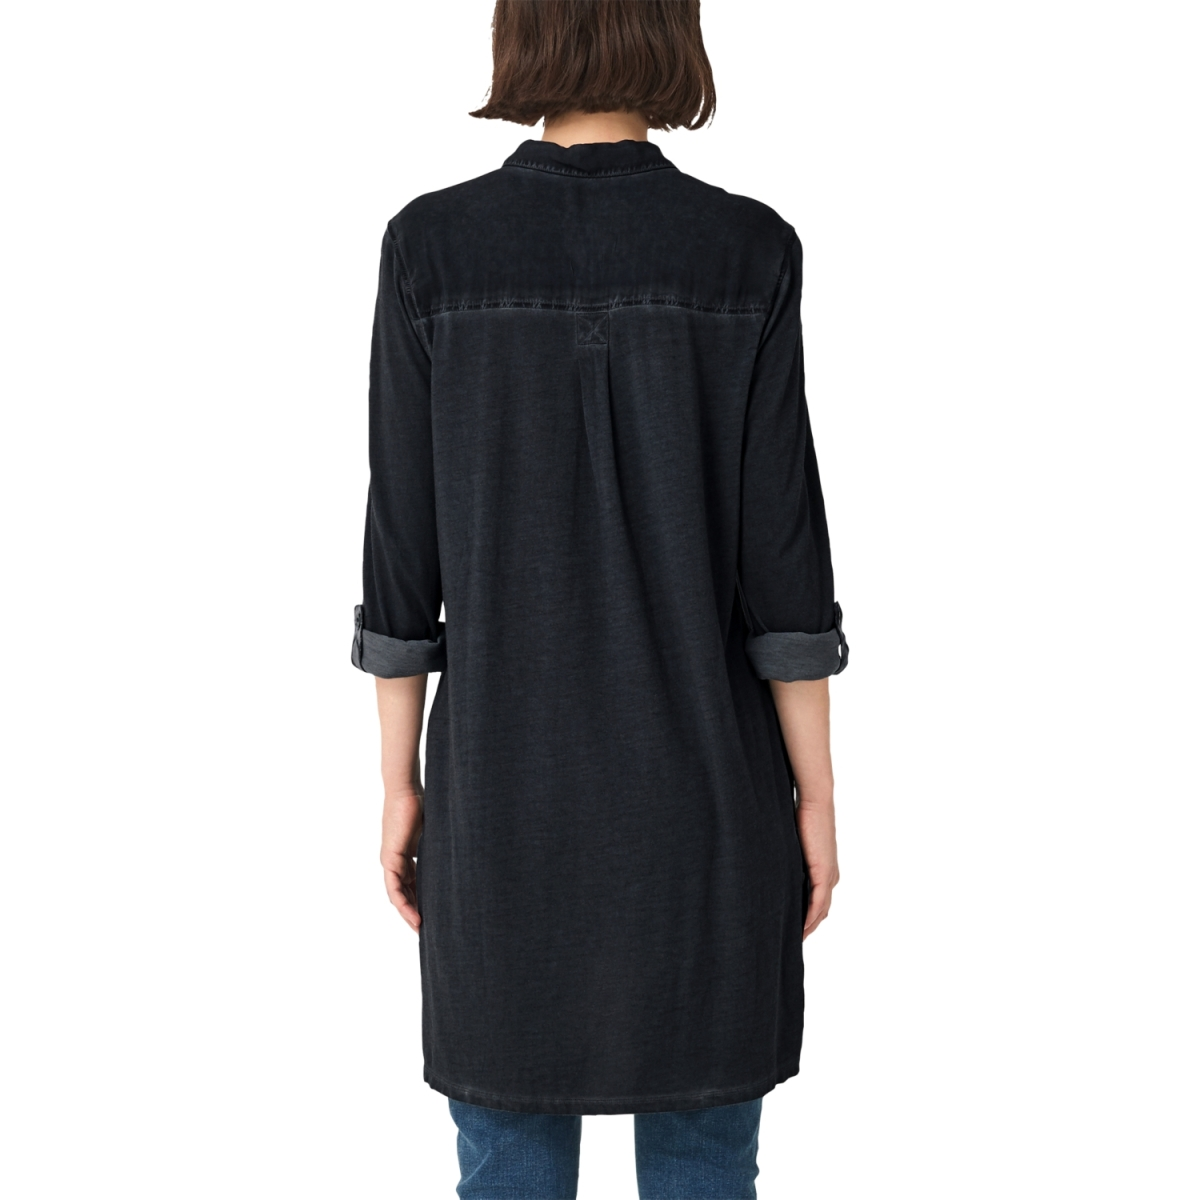 blouse met oprolbare mouwen 41909118502 q/s designed by blouse 9999